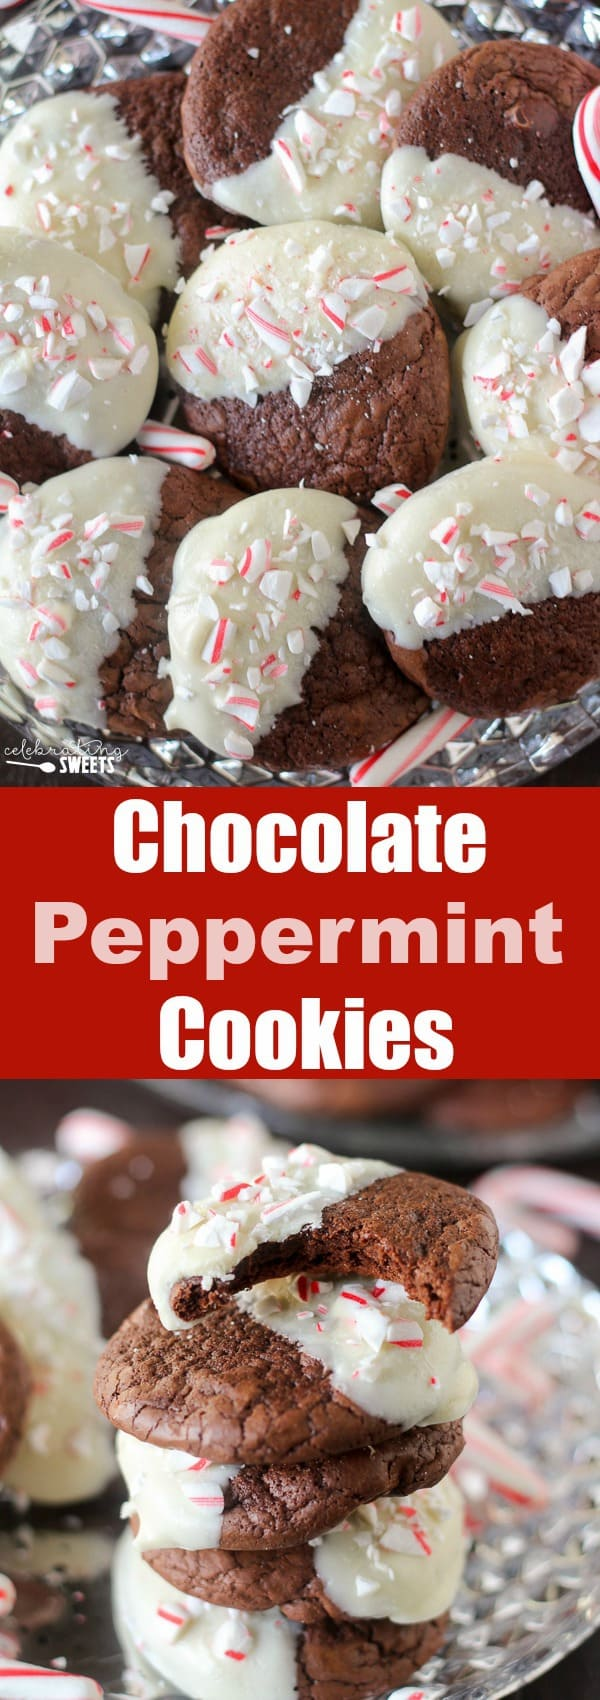 White Chocolate-Dipped Chocolate Peppermint Cookies